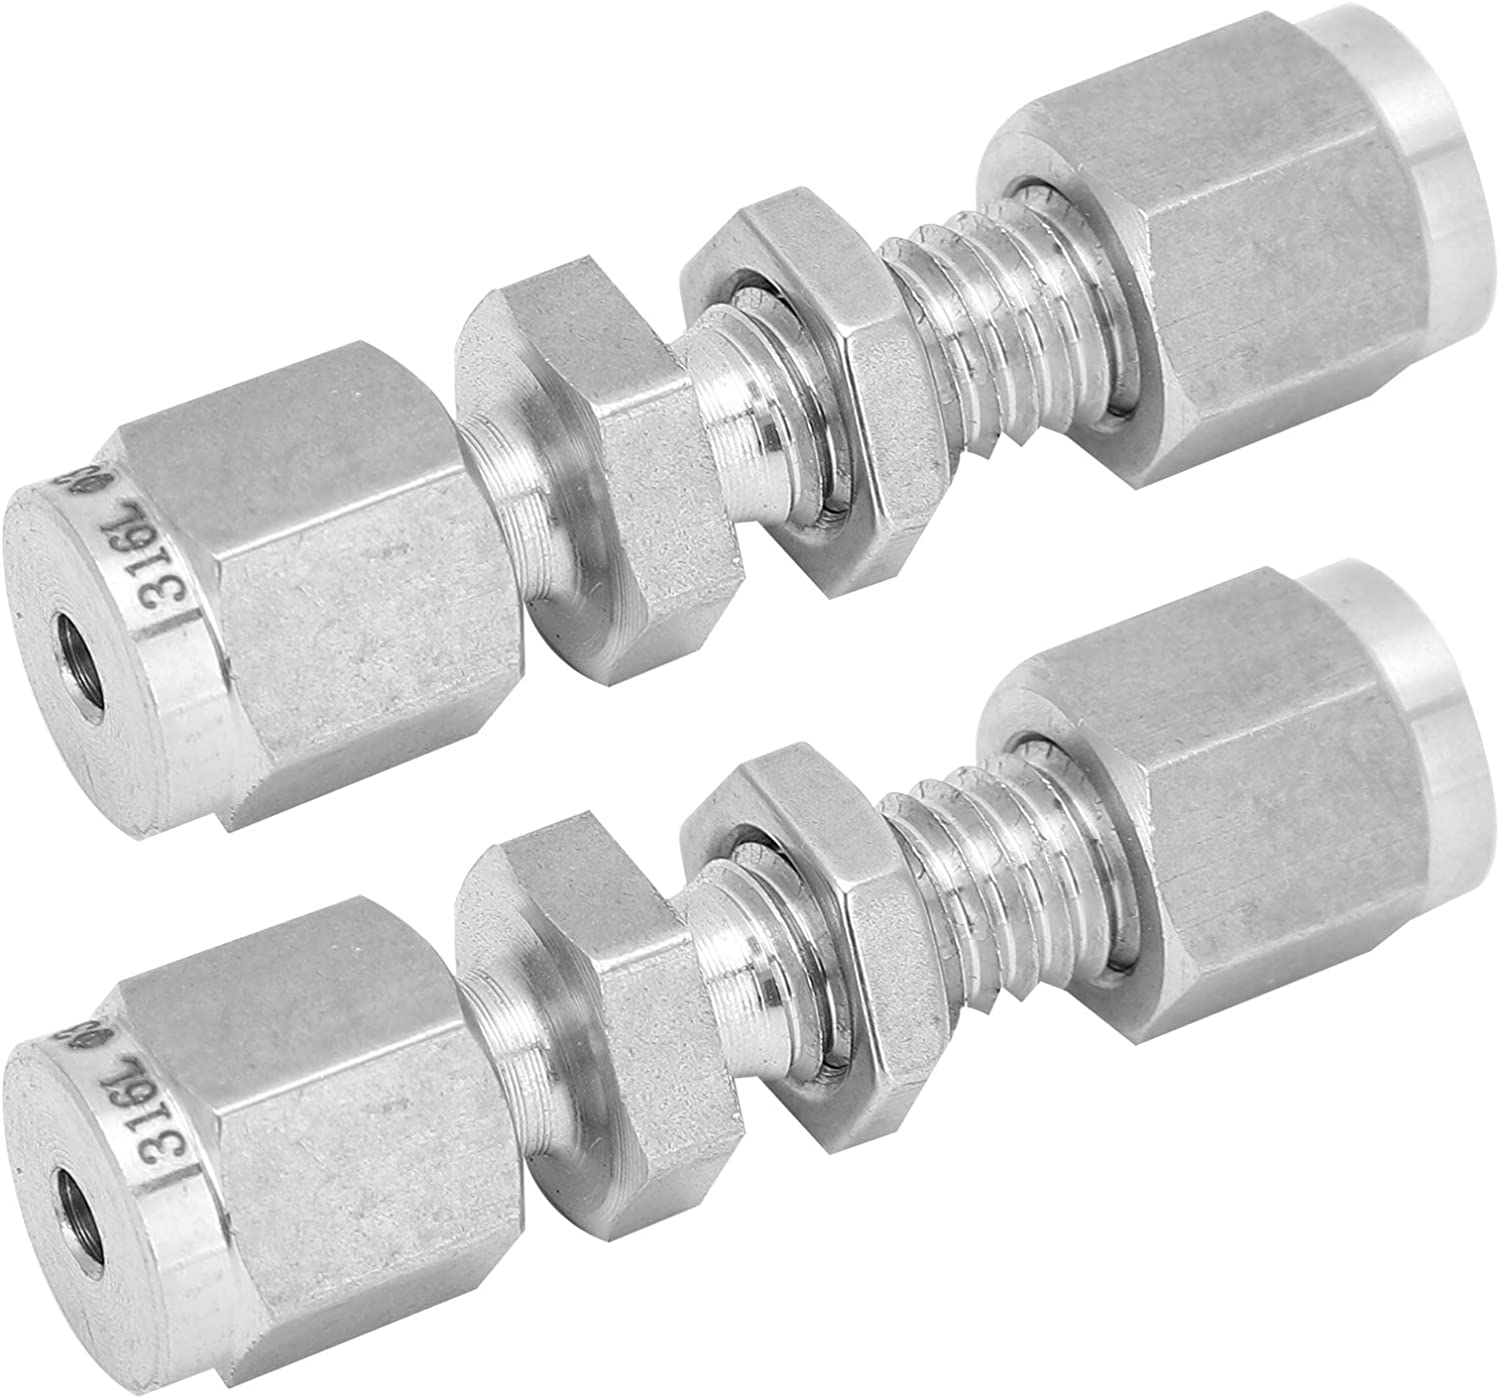 High Charlotte Mall Pressure 35% OFF Resistance Simple Connector Accesso and Convenient